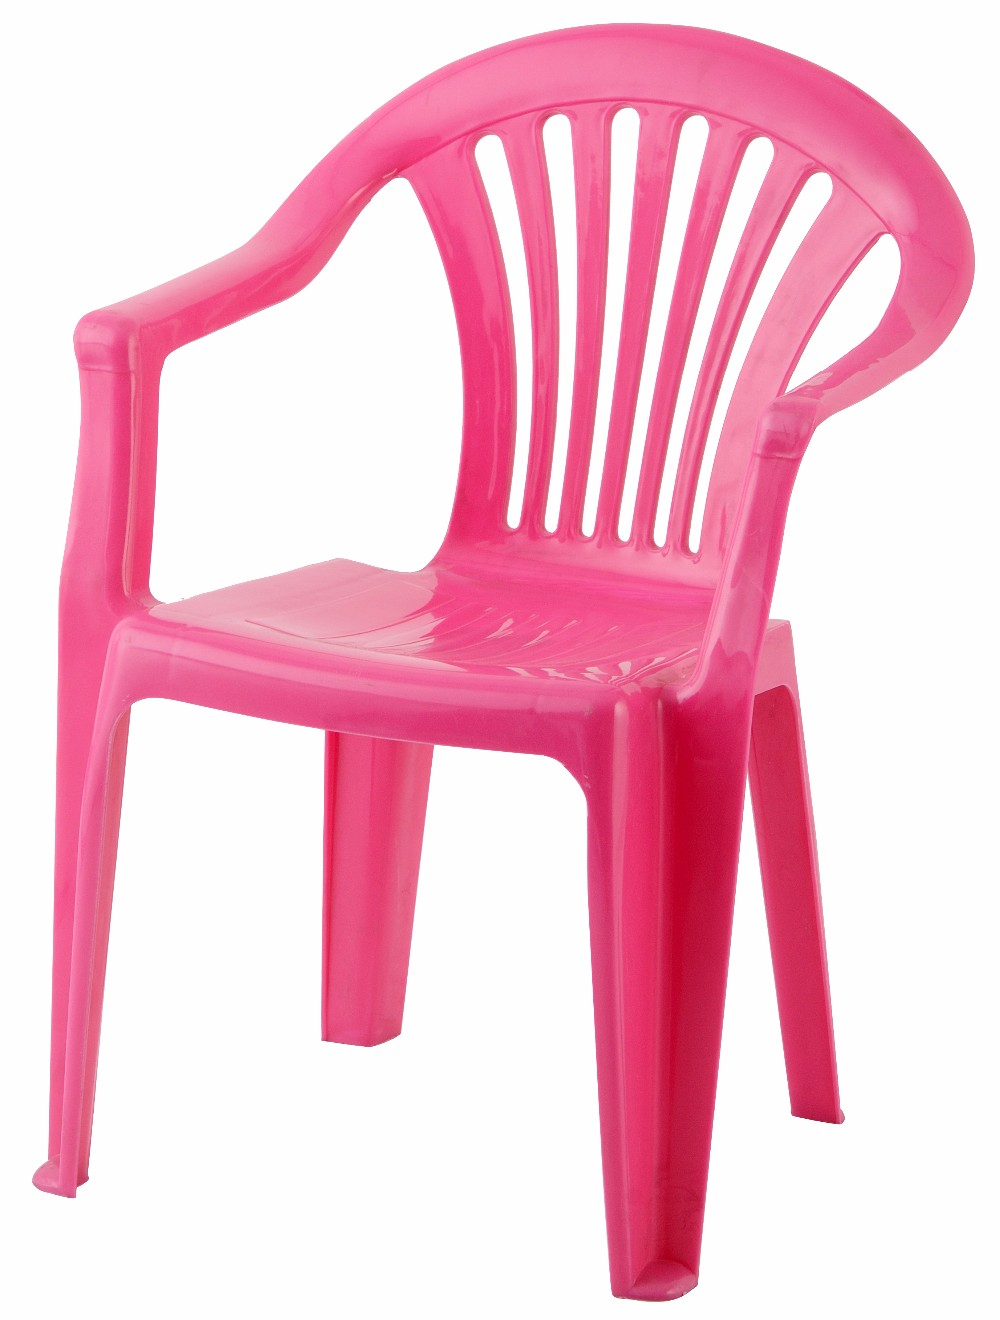 Kids plastic chairs chairs seating for Kids seating furniture